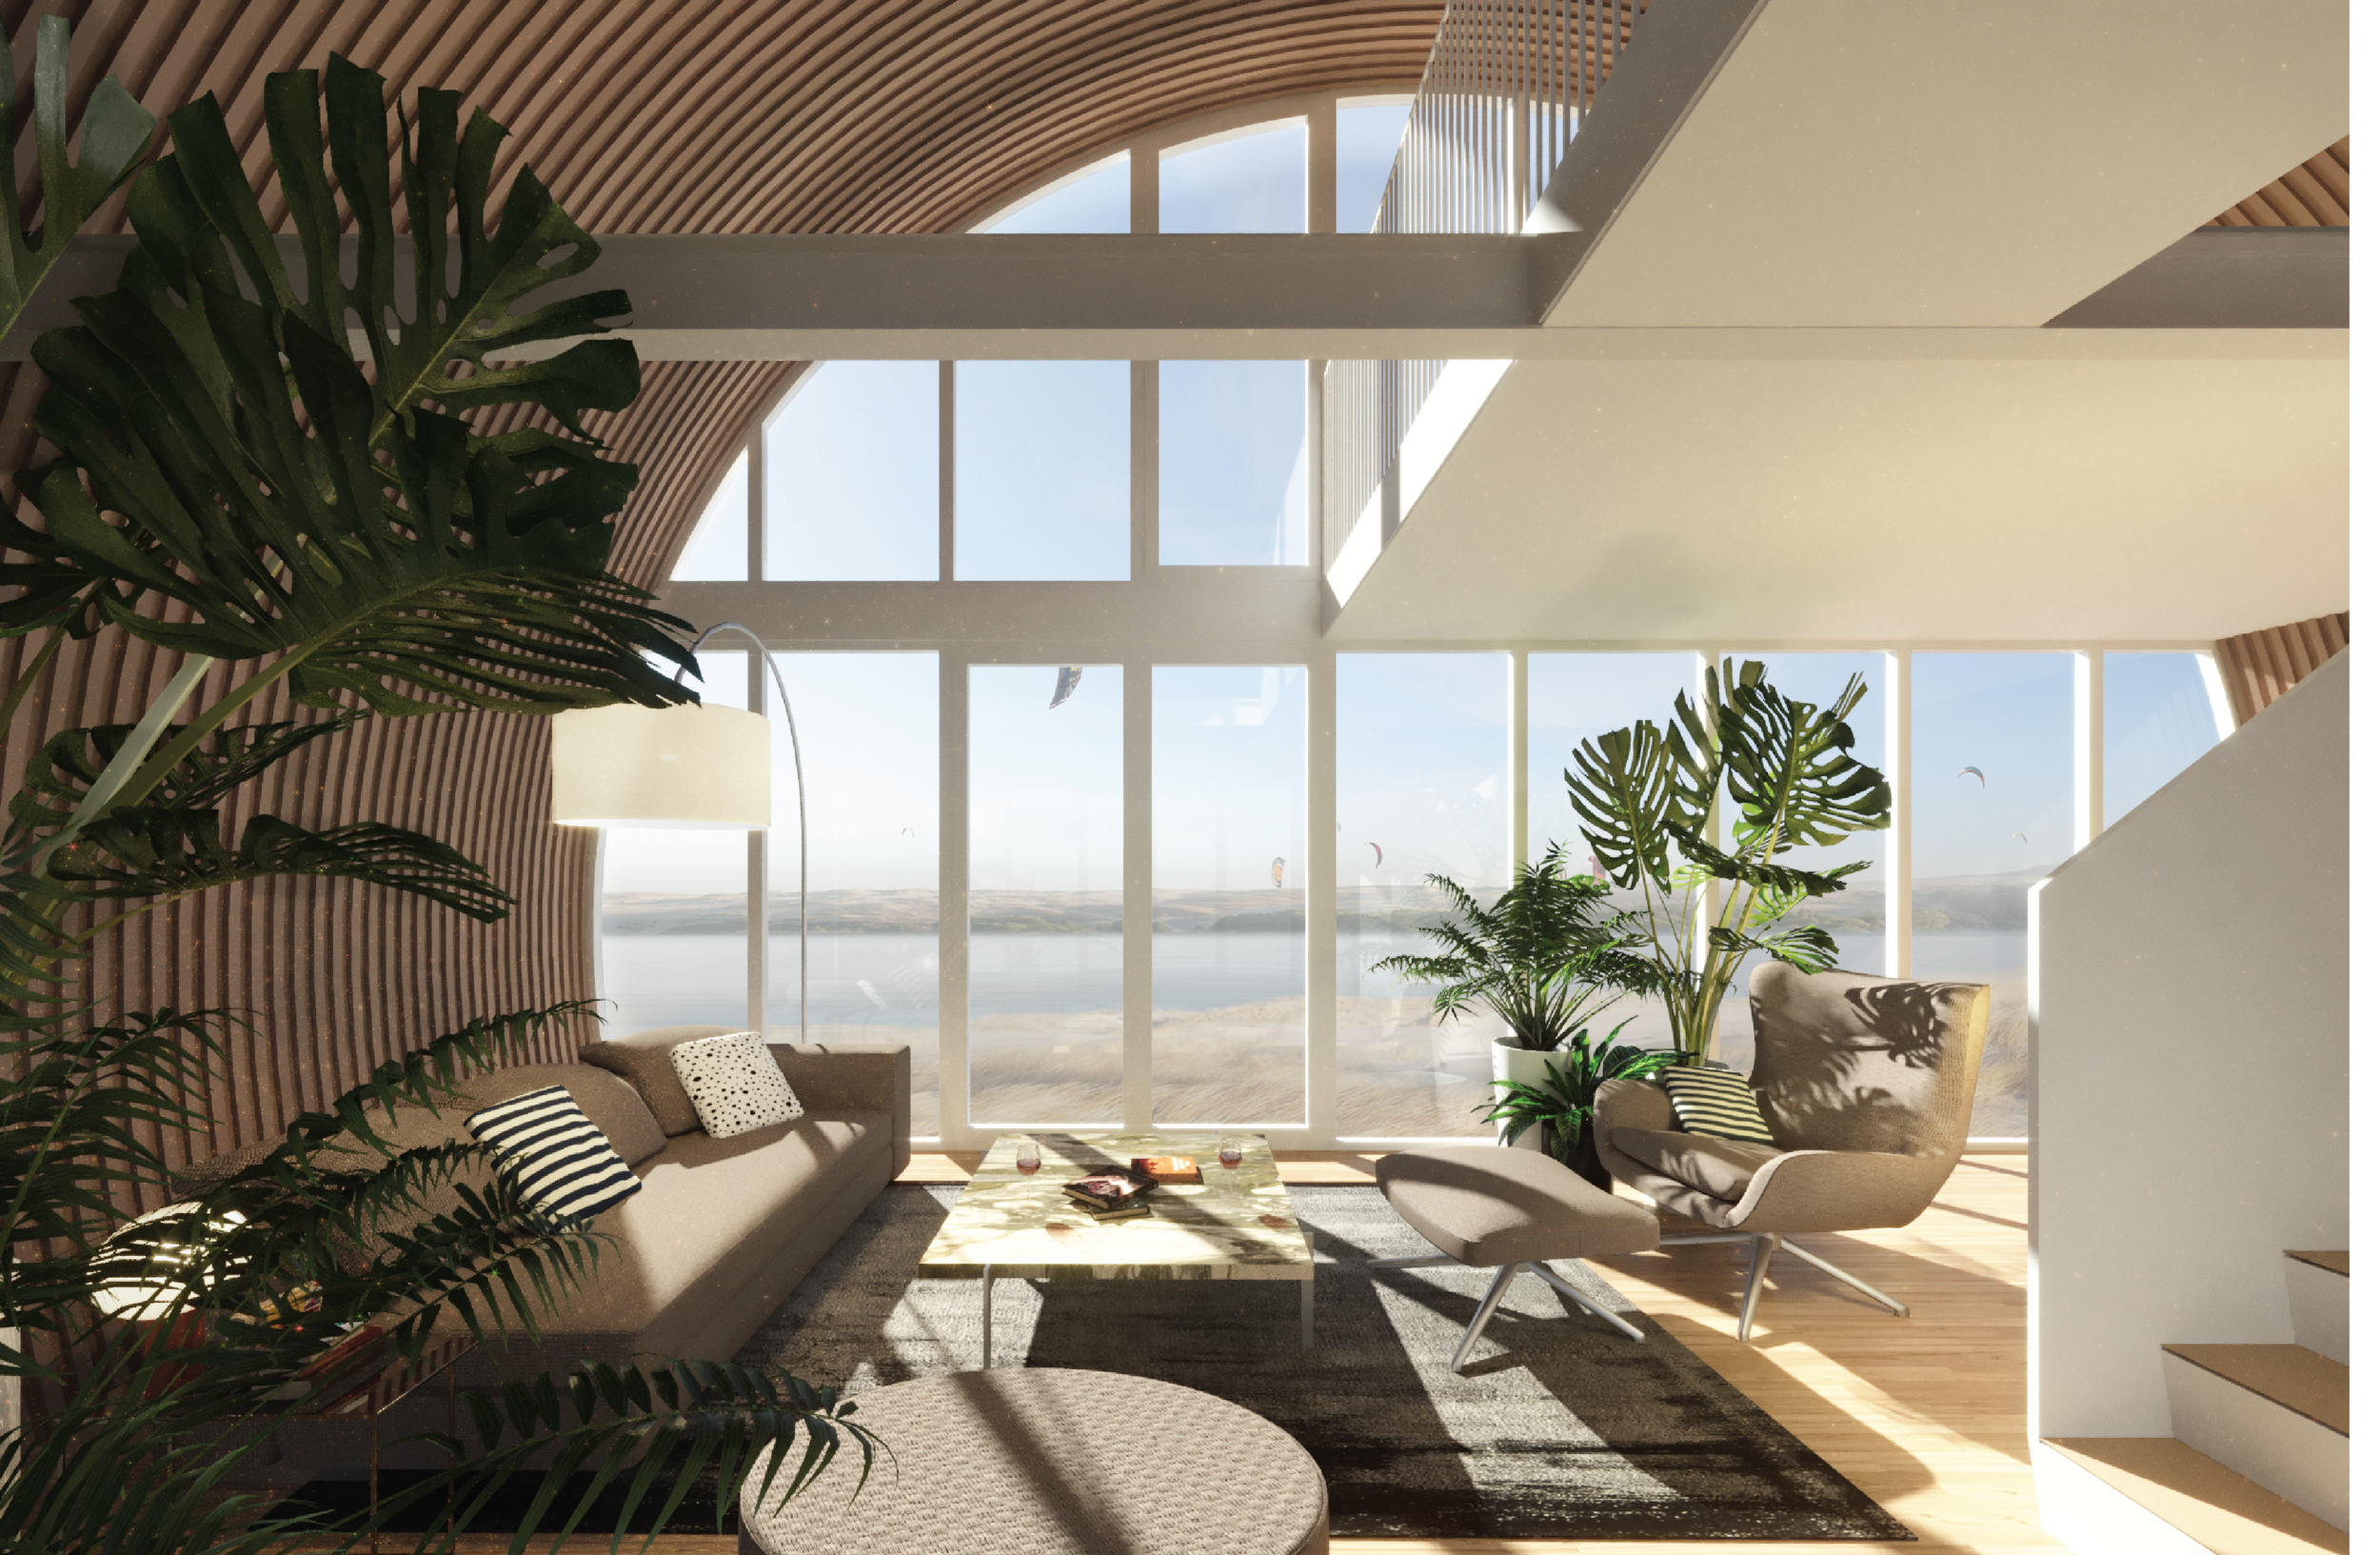 DOARCHITECTS_Rolling homes-06.png